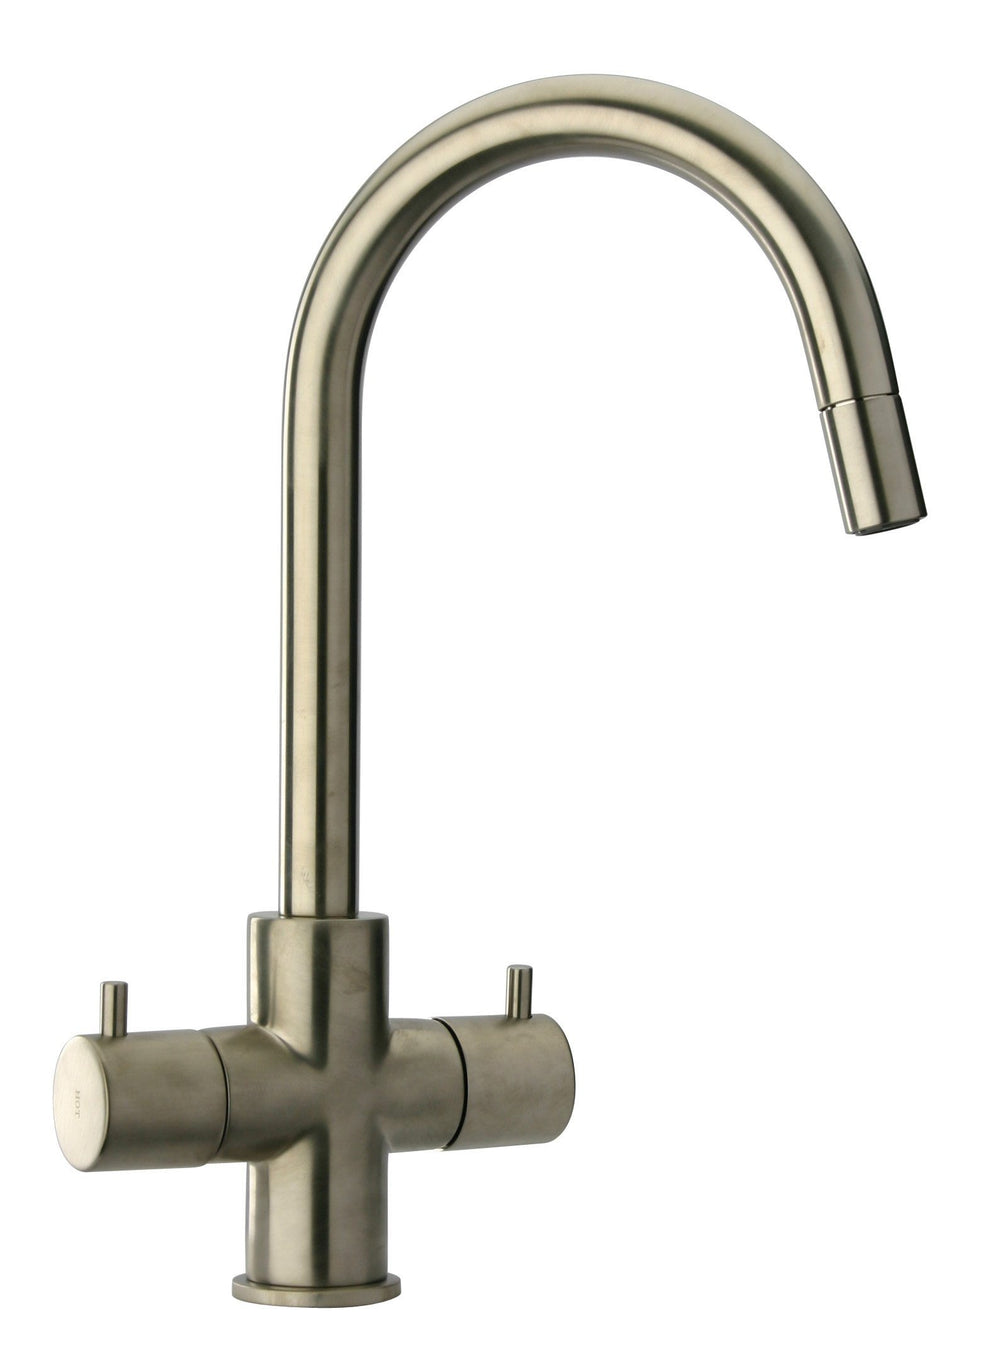 Latoscana Two Handle Pull-Down Kitchen Faucet In Brushed Nickel Finish Kitchen faucet Latoscana